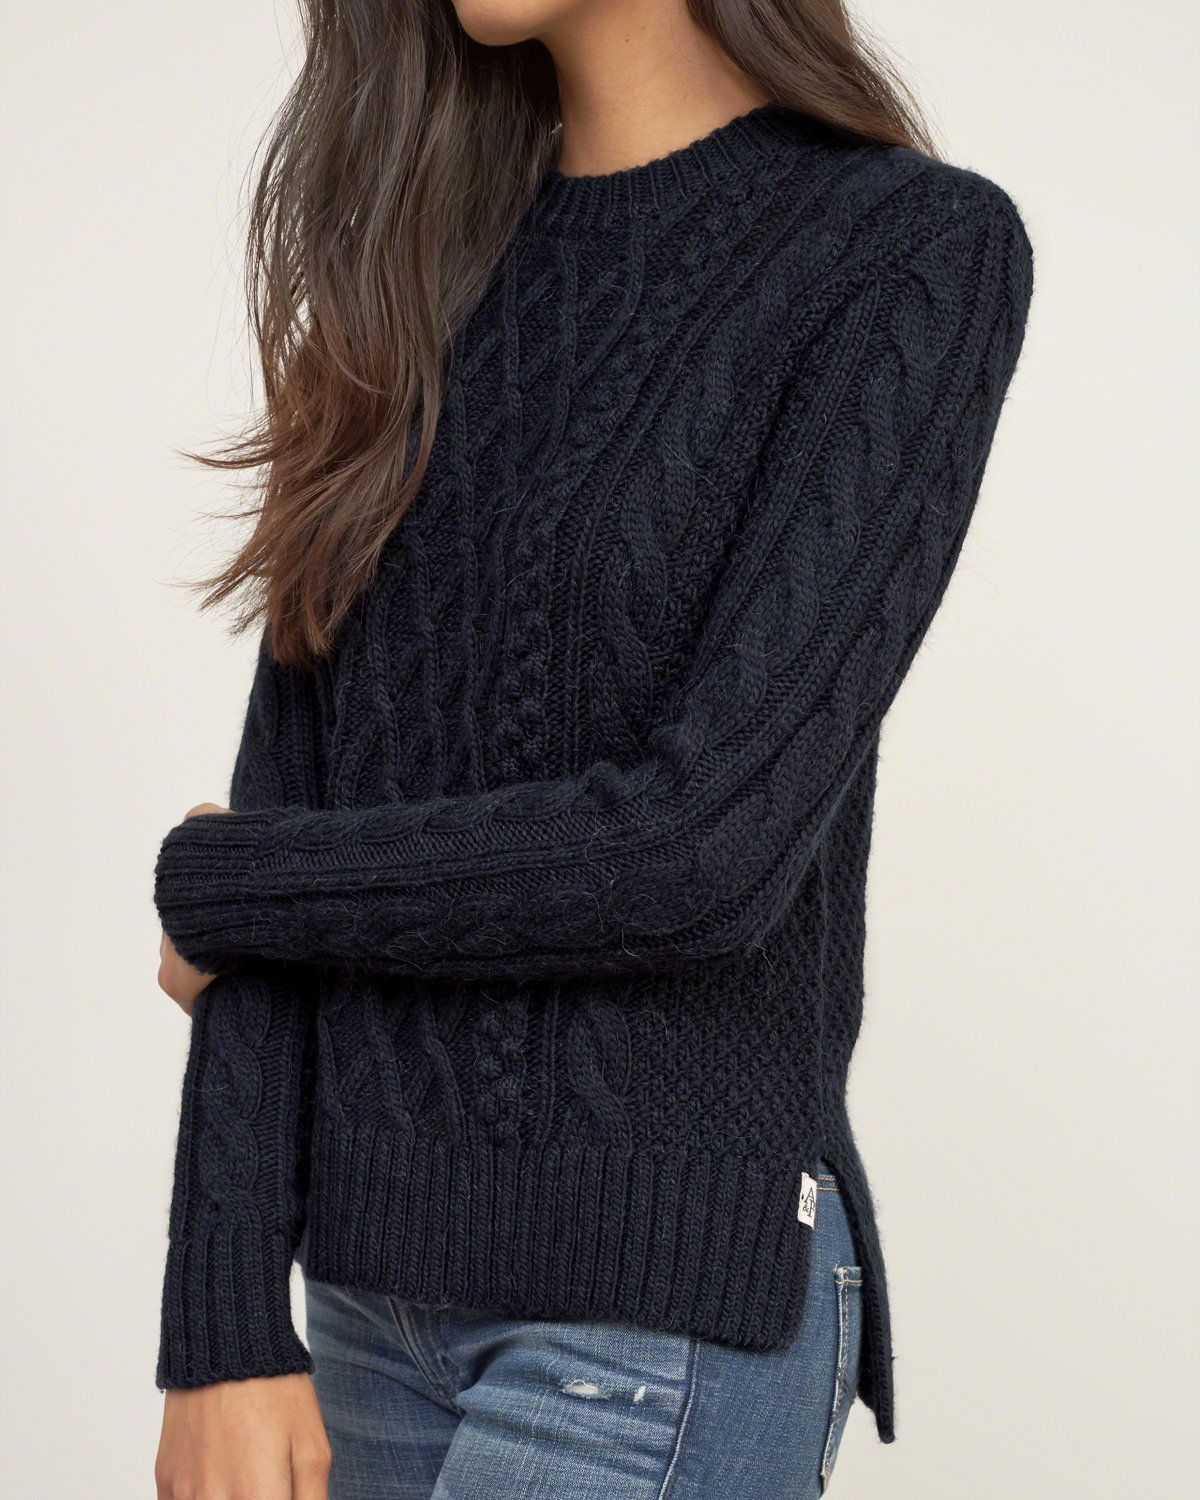 black knitted jumper womens - Google Search